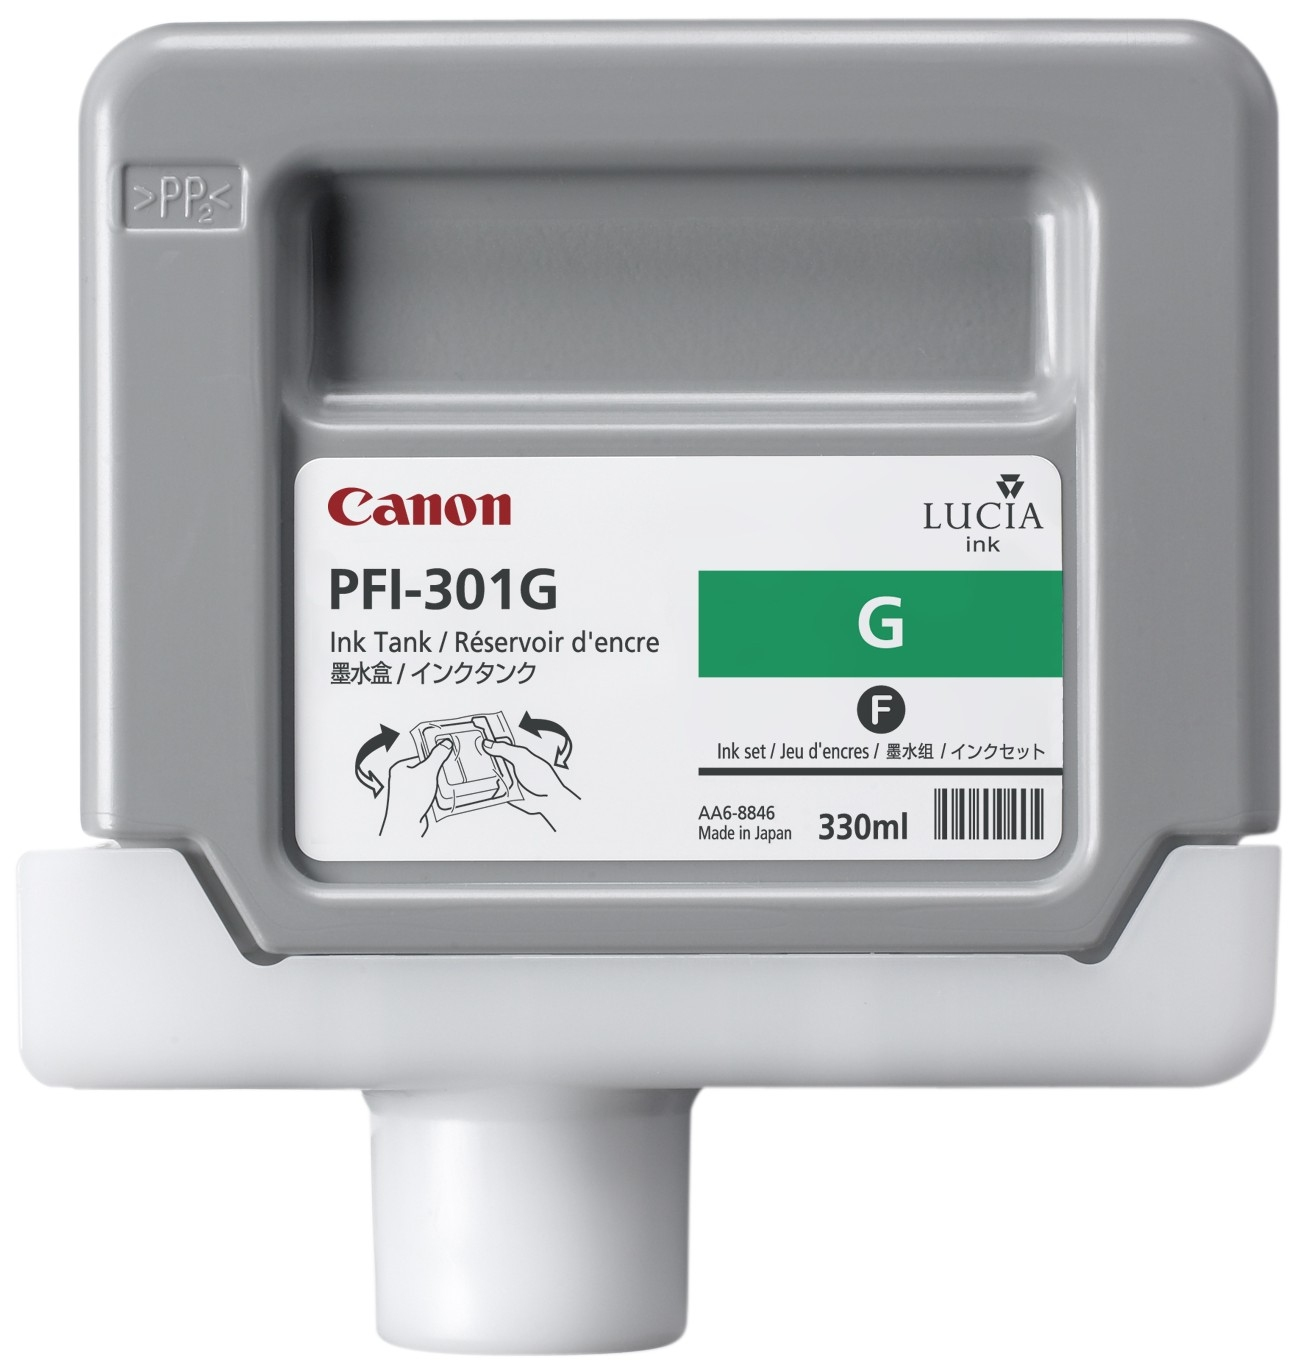 CANON PFI-301G - Green Ink Tank - 330ml 1493b001aa